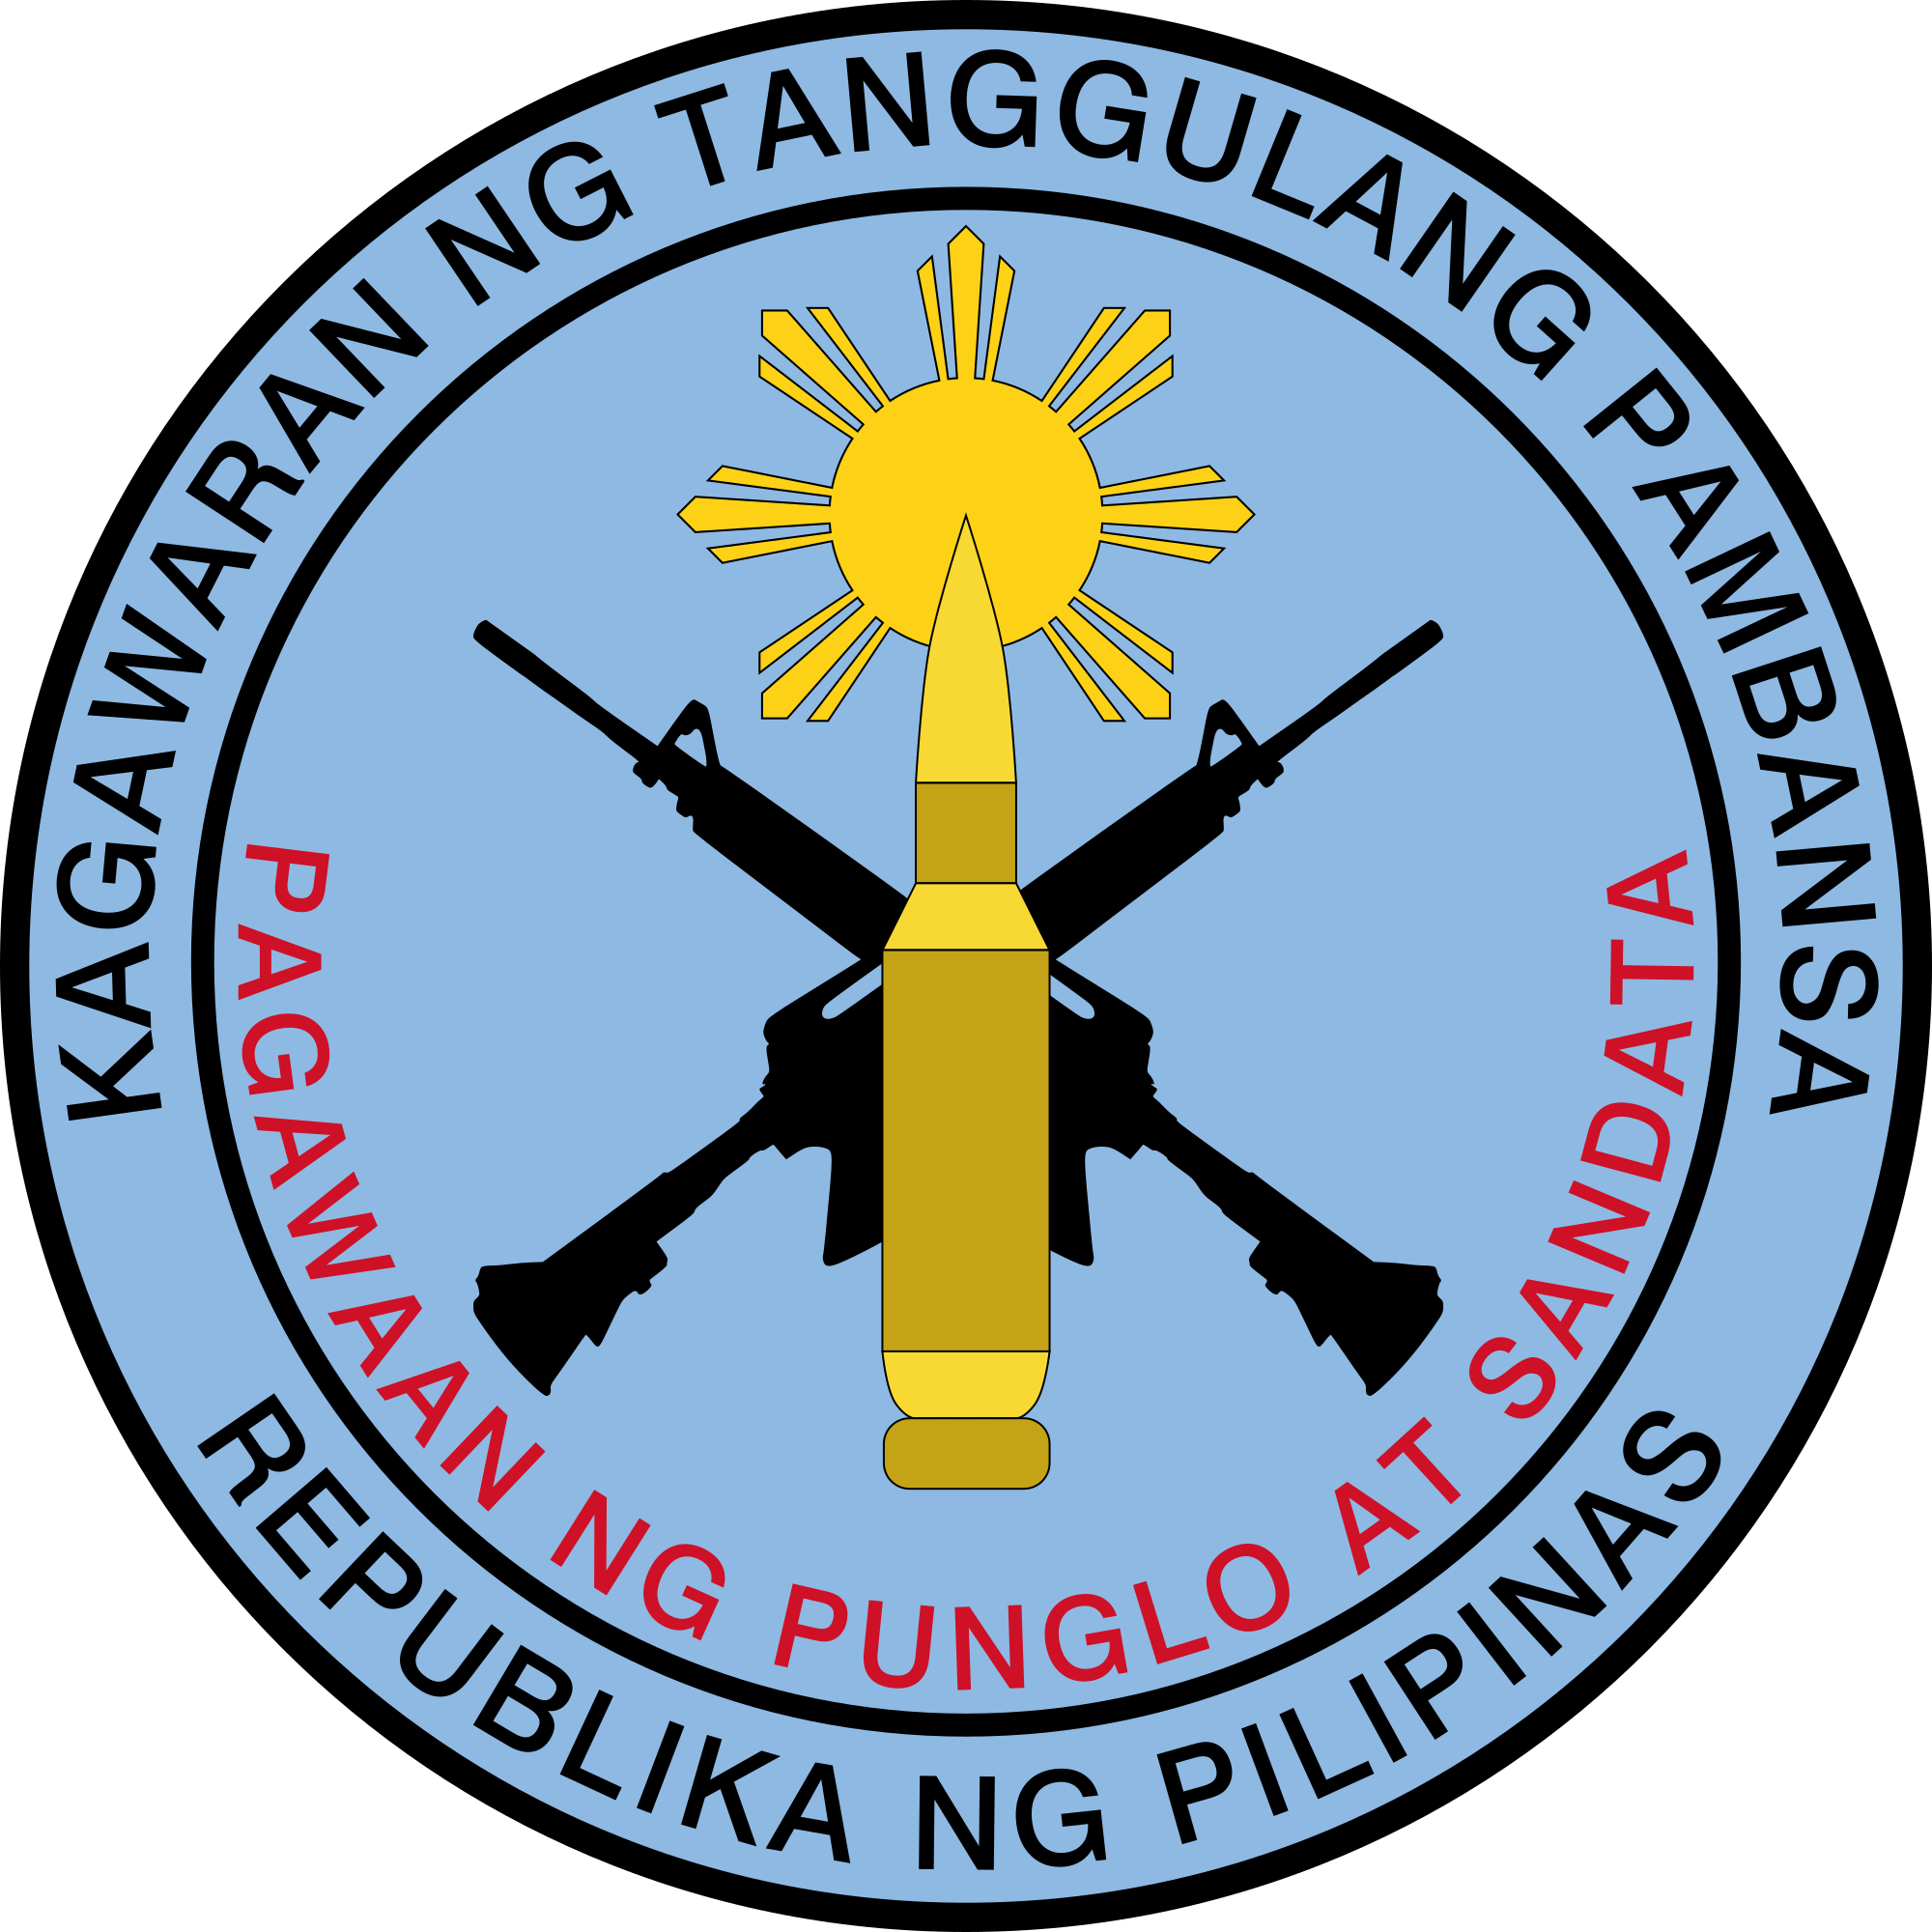 Government clipart government philippine. File arsenal department of